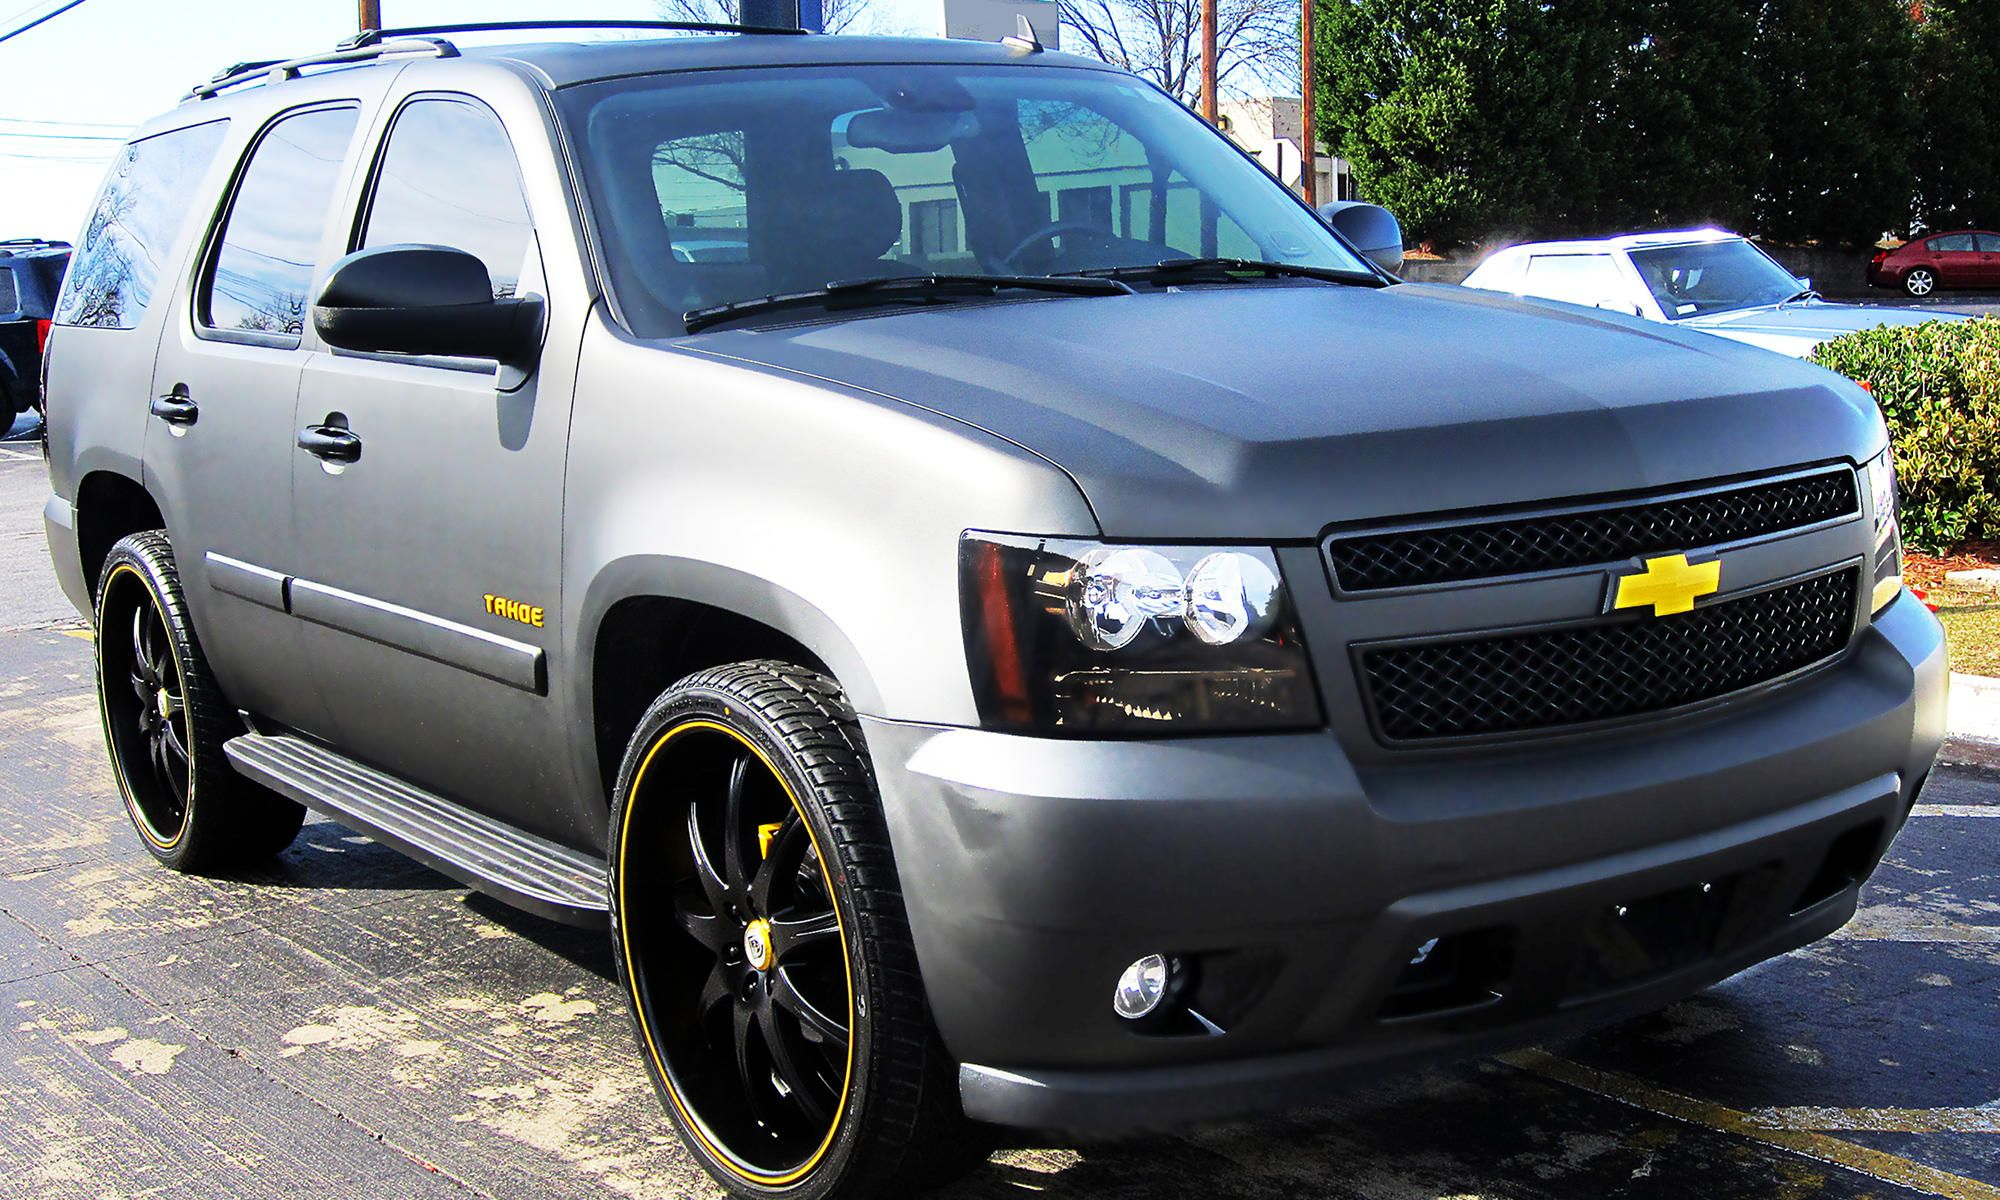 Pin By Elc On Cars And Trucks Chevy Tahoe Chevrolet Tahoe Chevy